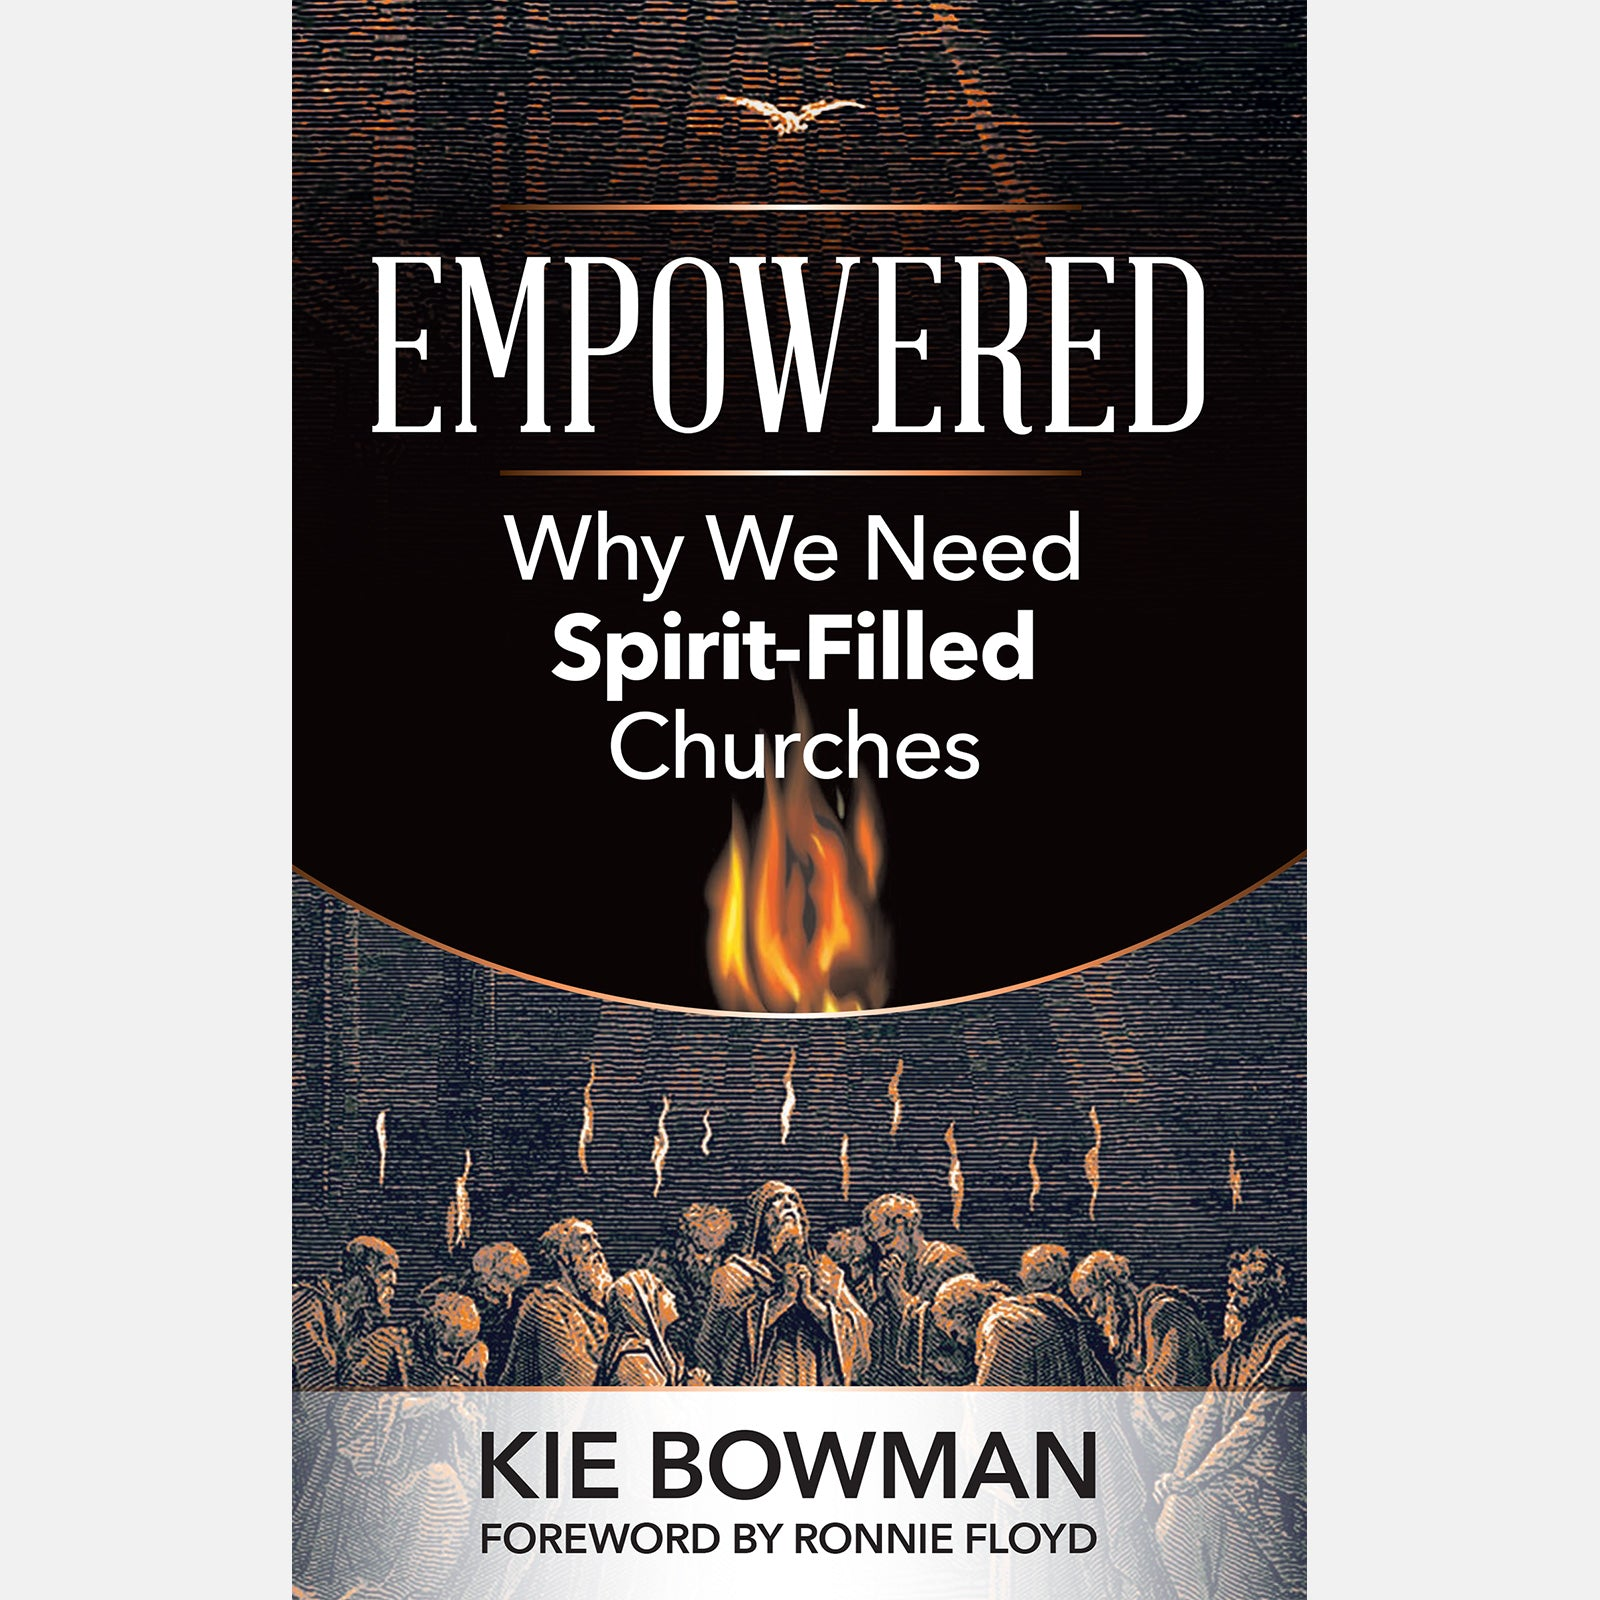 Empowered: Why We Need Spirit-Filled Churches